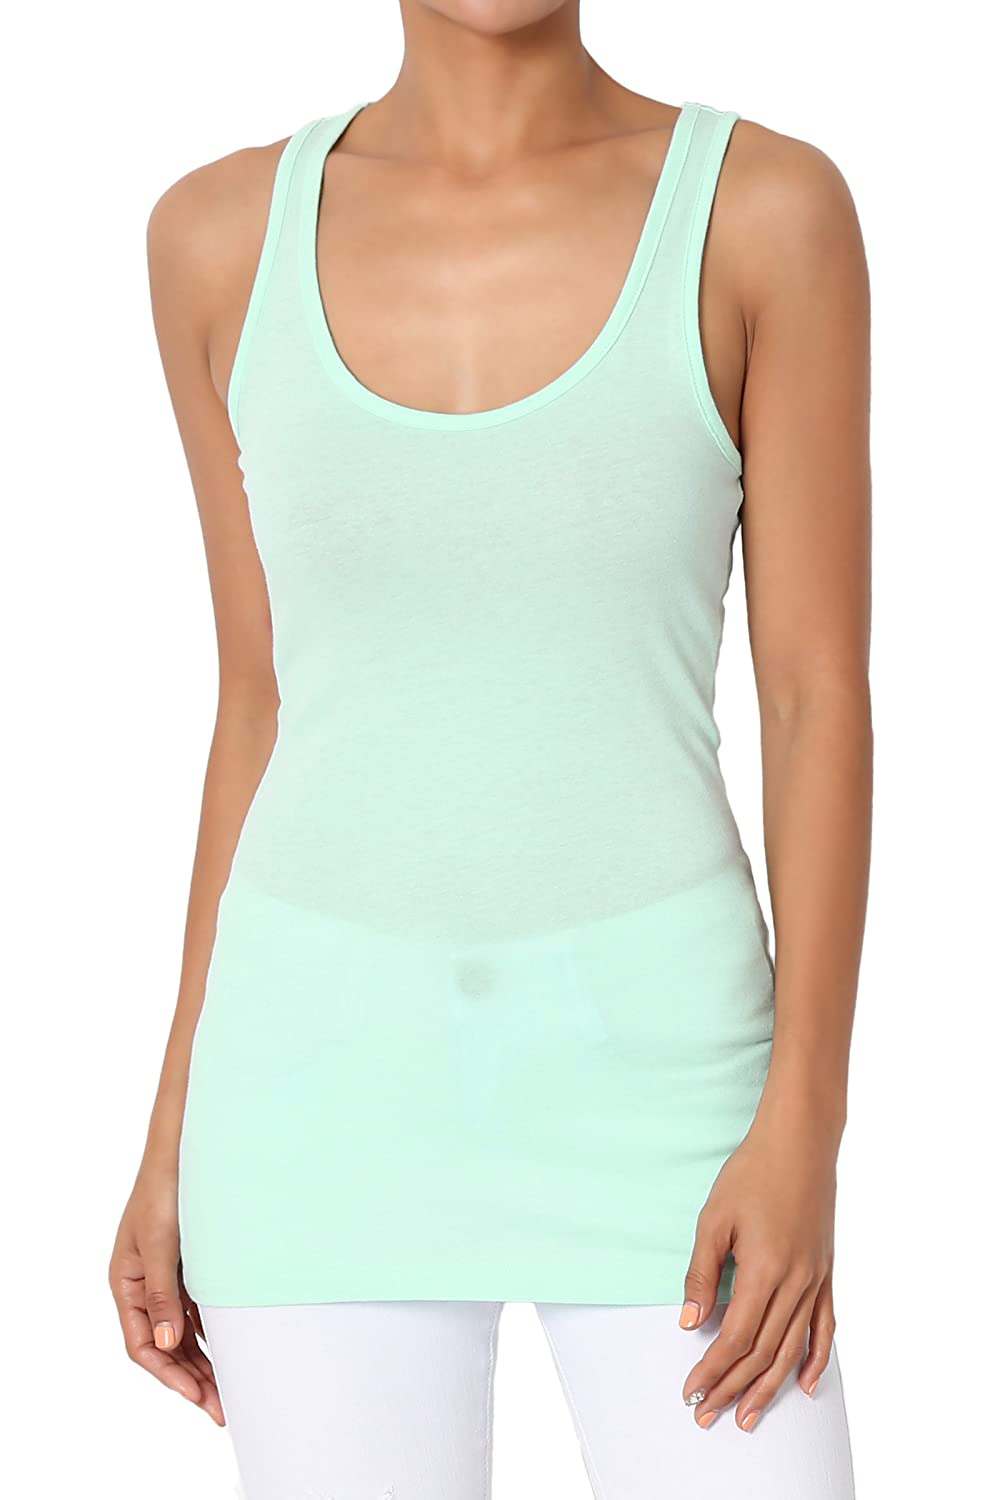 ab7863bfacda5 Amazon.com  TheMogan Women s Basic Scoop Neck Stretch Cotton Tank Top  Sleeveless Casual Tee  Clothing